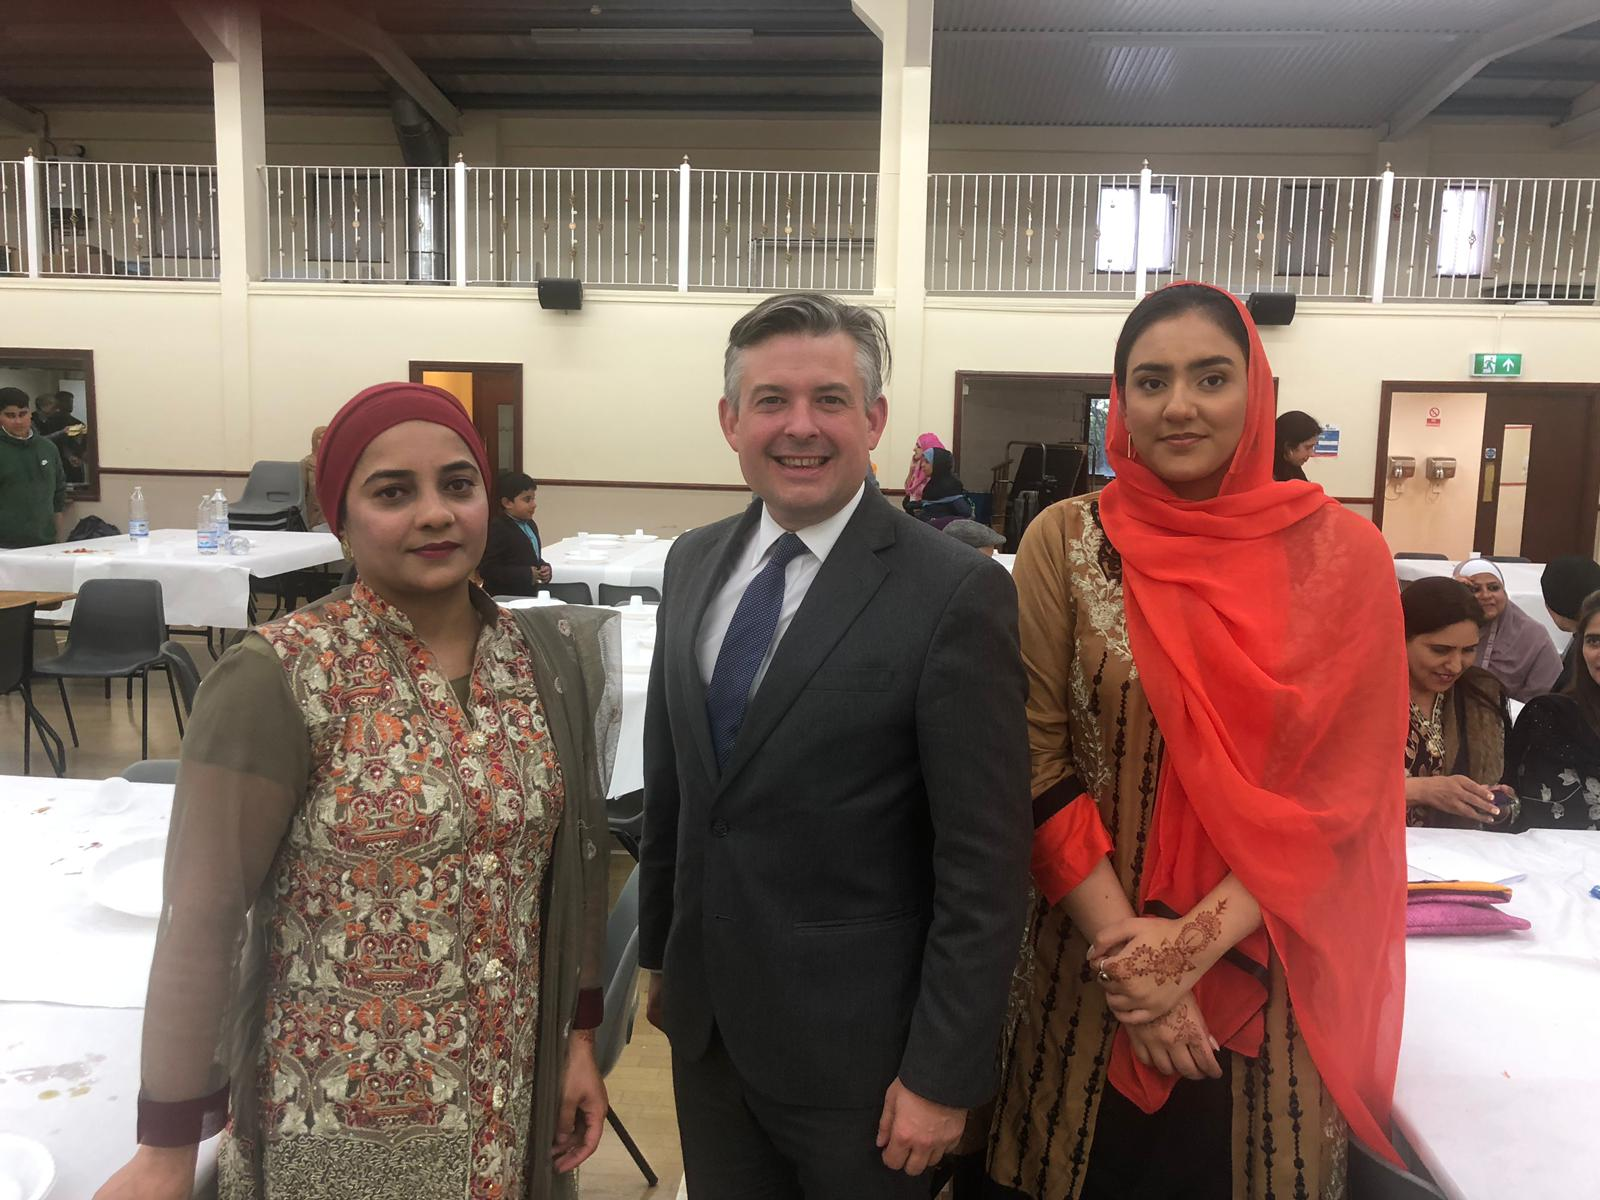 Jon spoke at the Inter-faith Eid Dinner at Central Mosque organised by The Islamic Centre Leicester to celebrate wider integration with all faith and non-faith communities - Friday June 7 2019